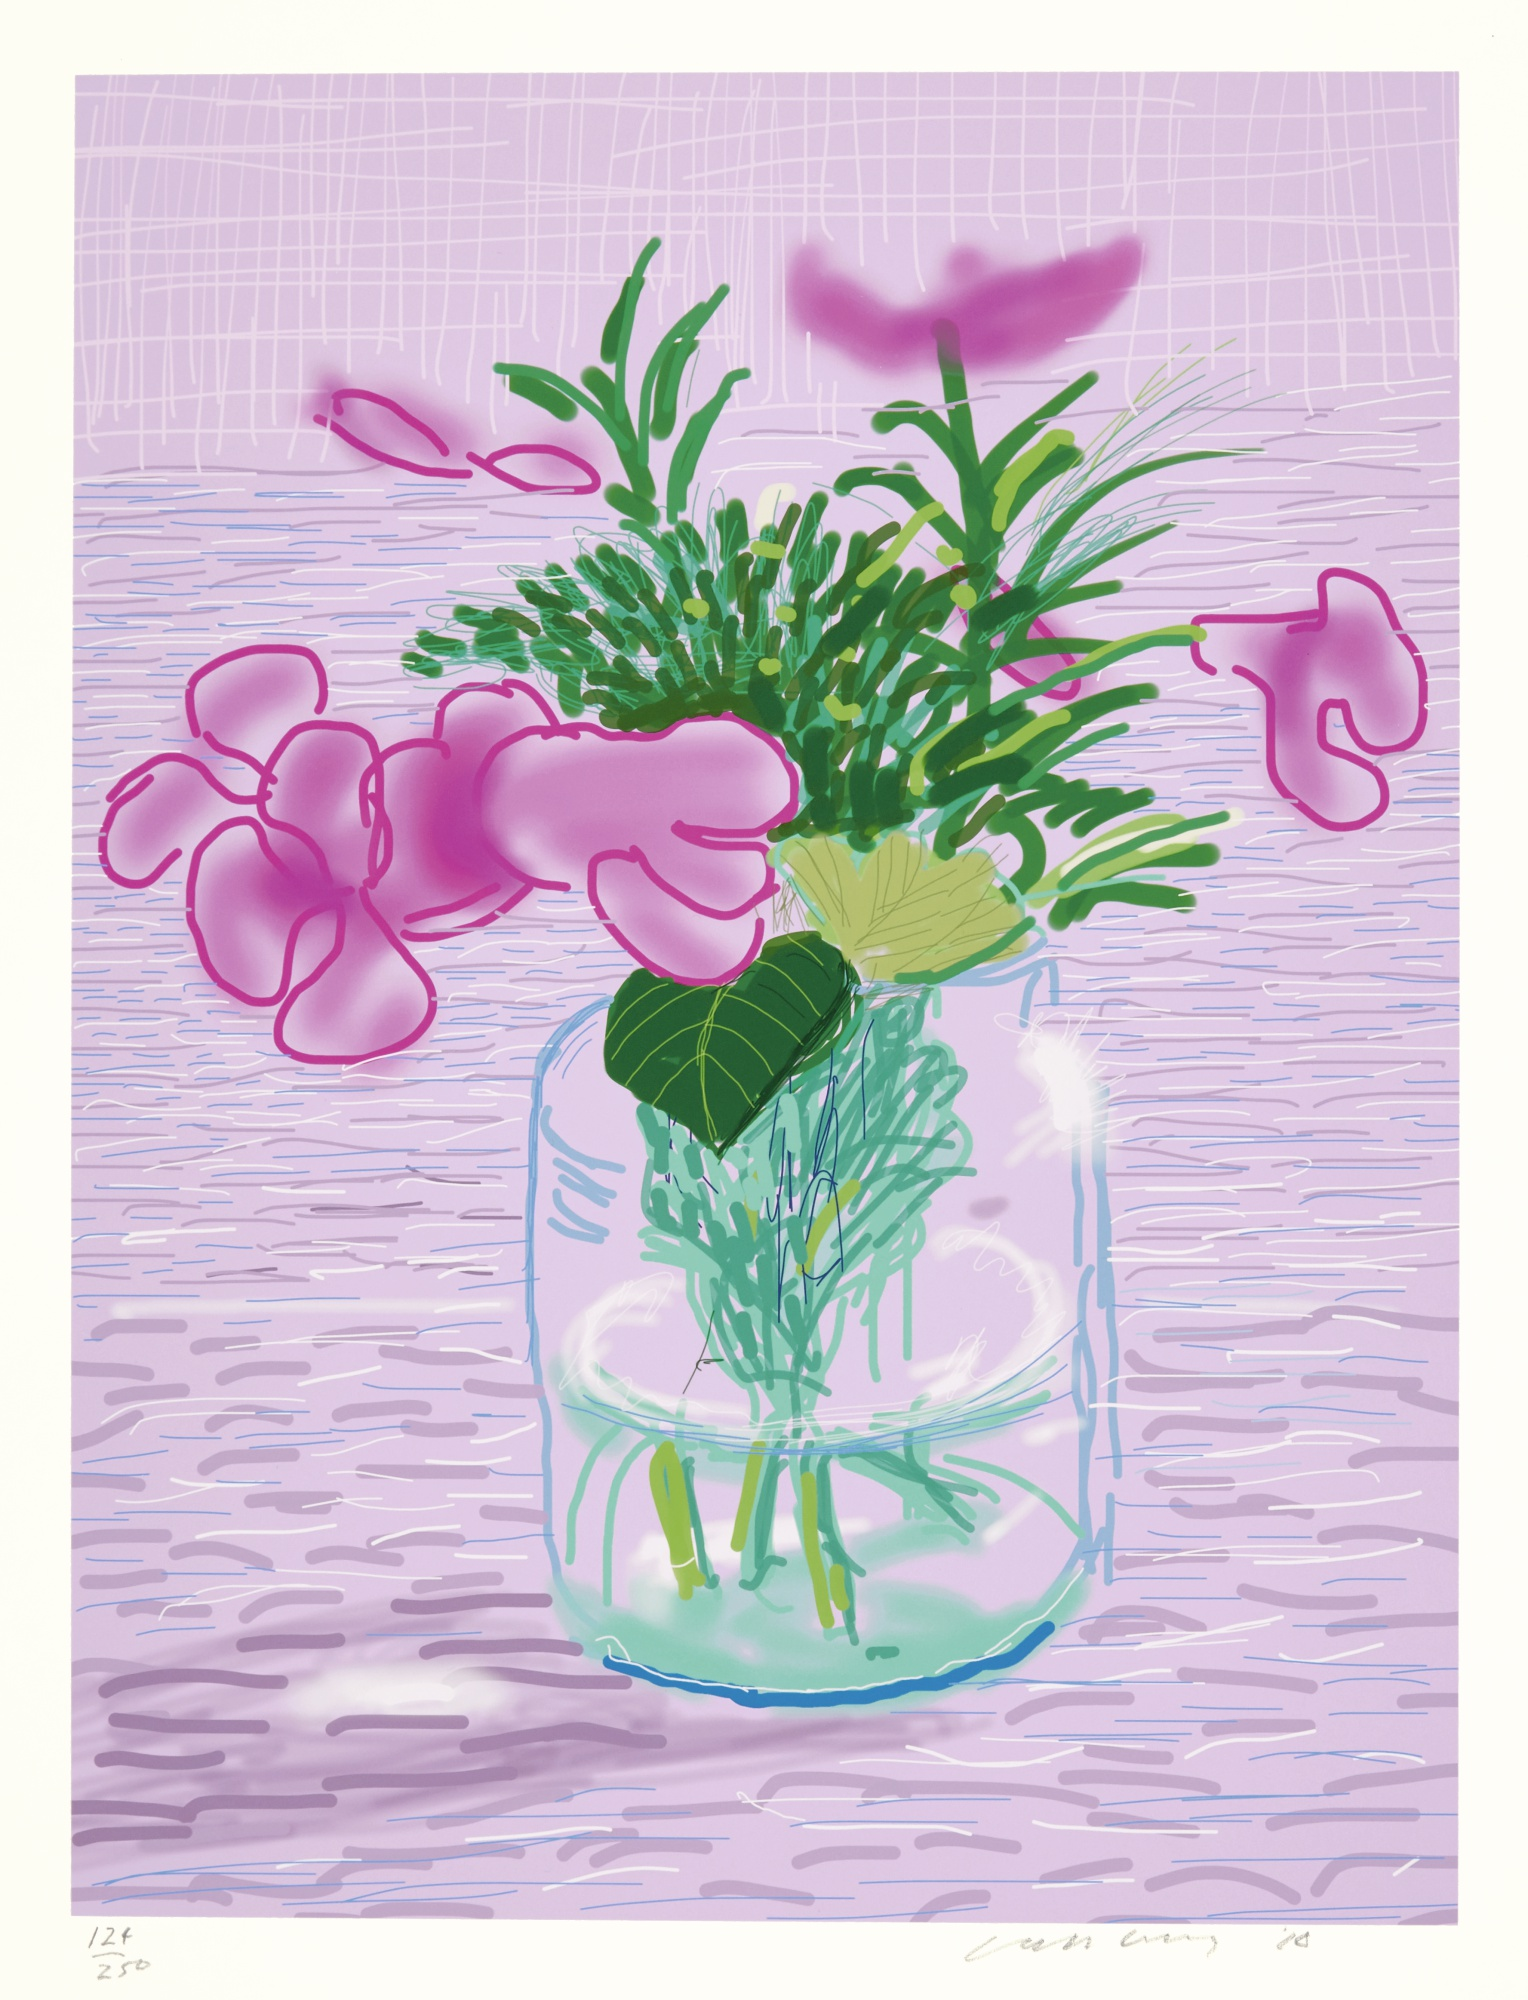 David Hockney-Flowers-2010